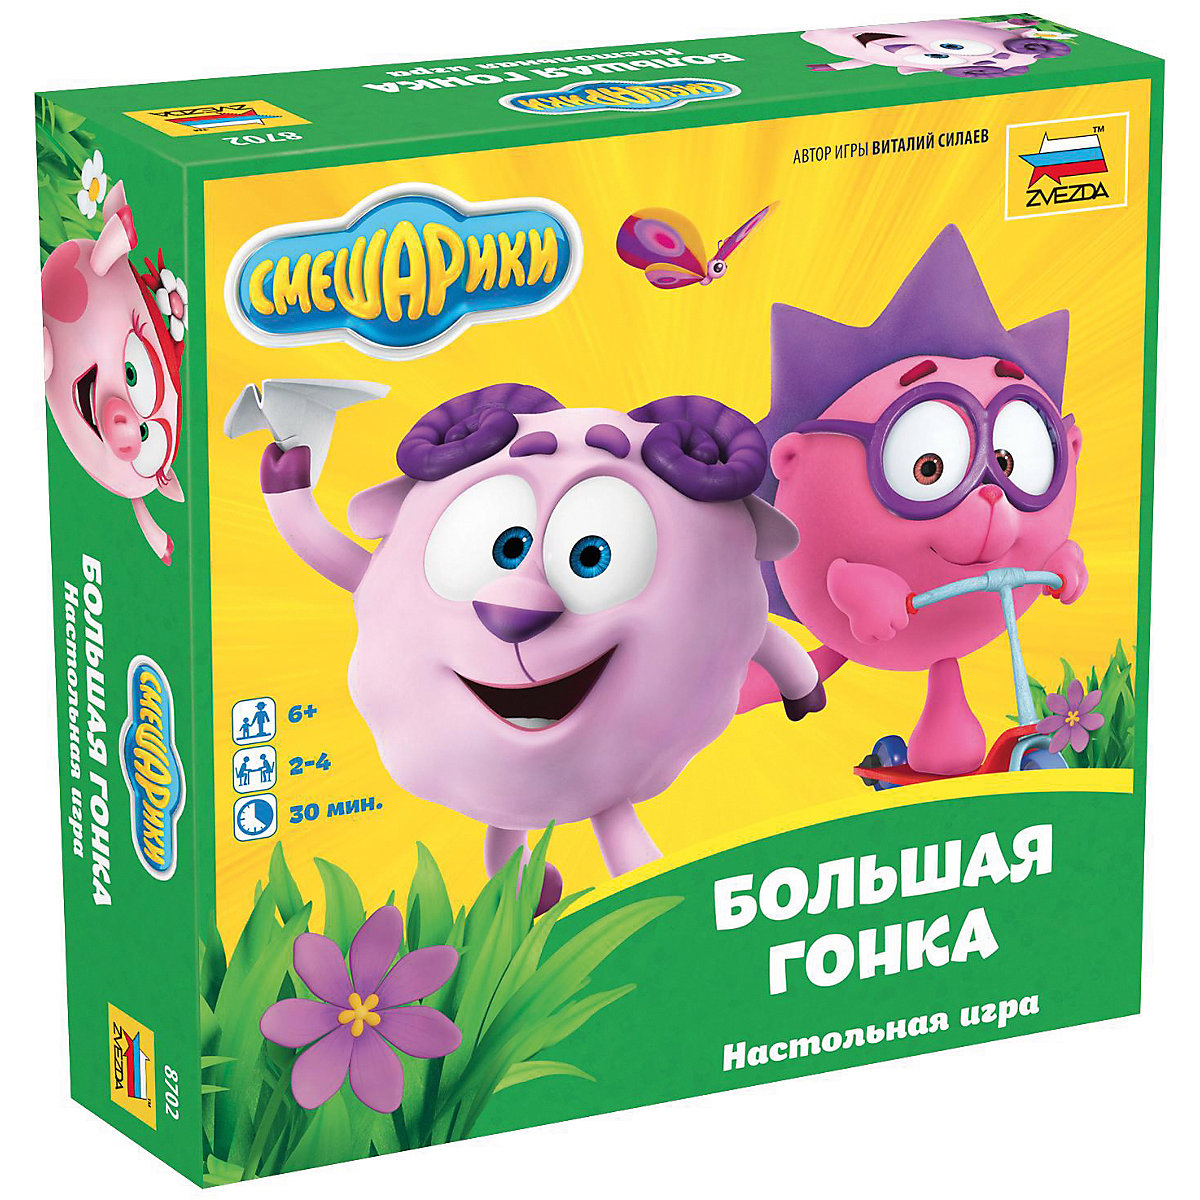 Zvezda Party Games 8988594 board game fine motor skills for the company developing play girl boy friends батарейки duracell крона 1шт lr mn1604 6lr61 116527